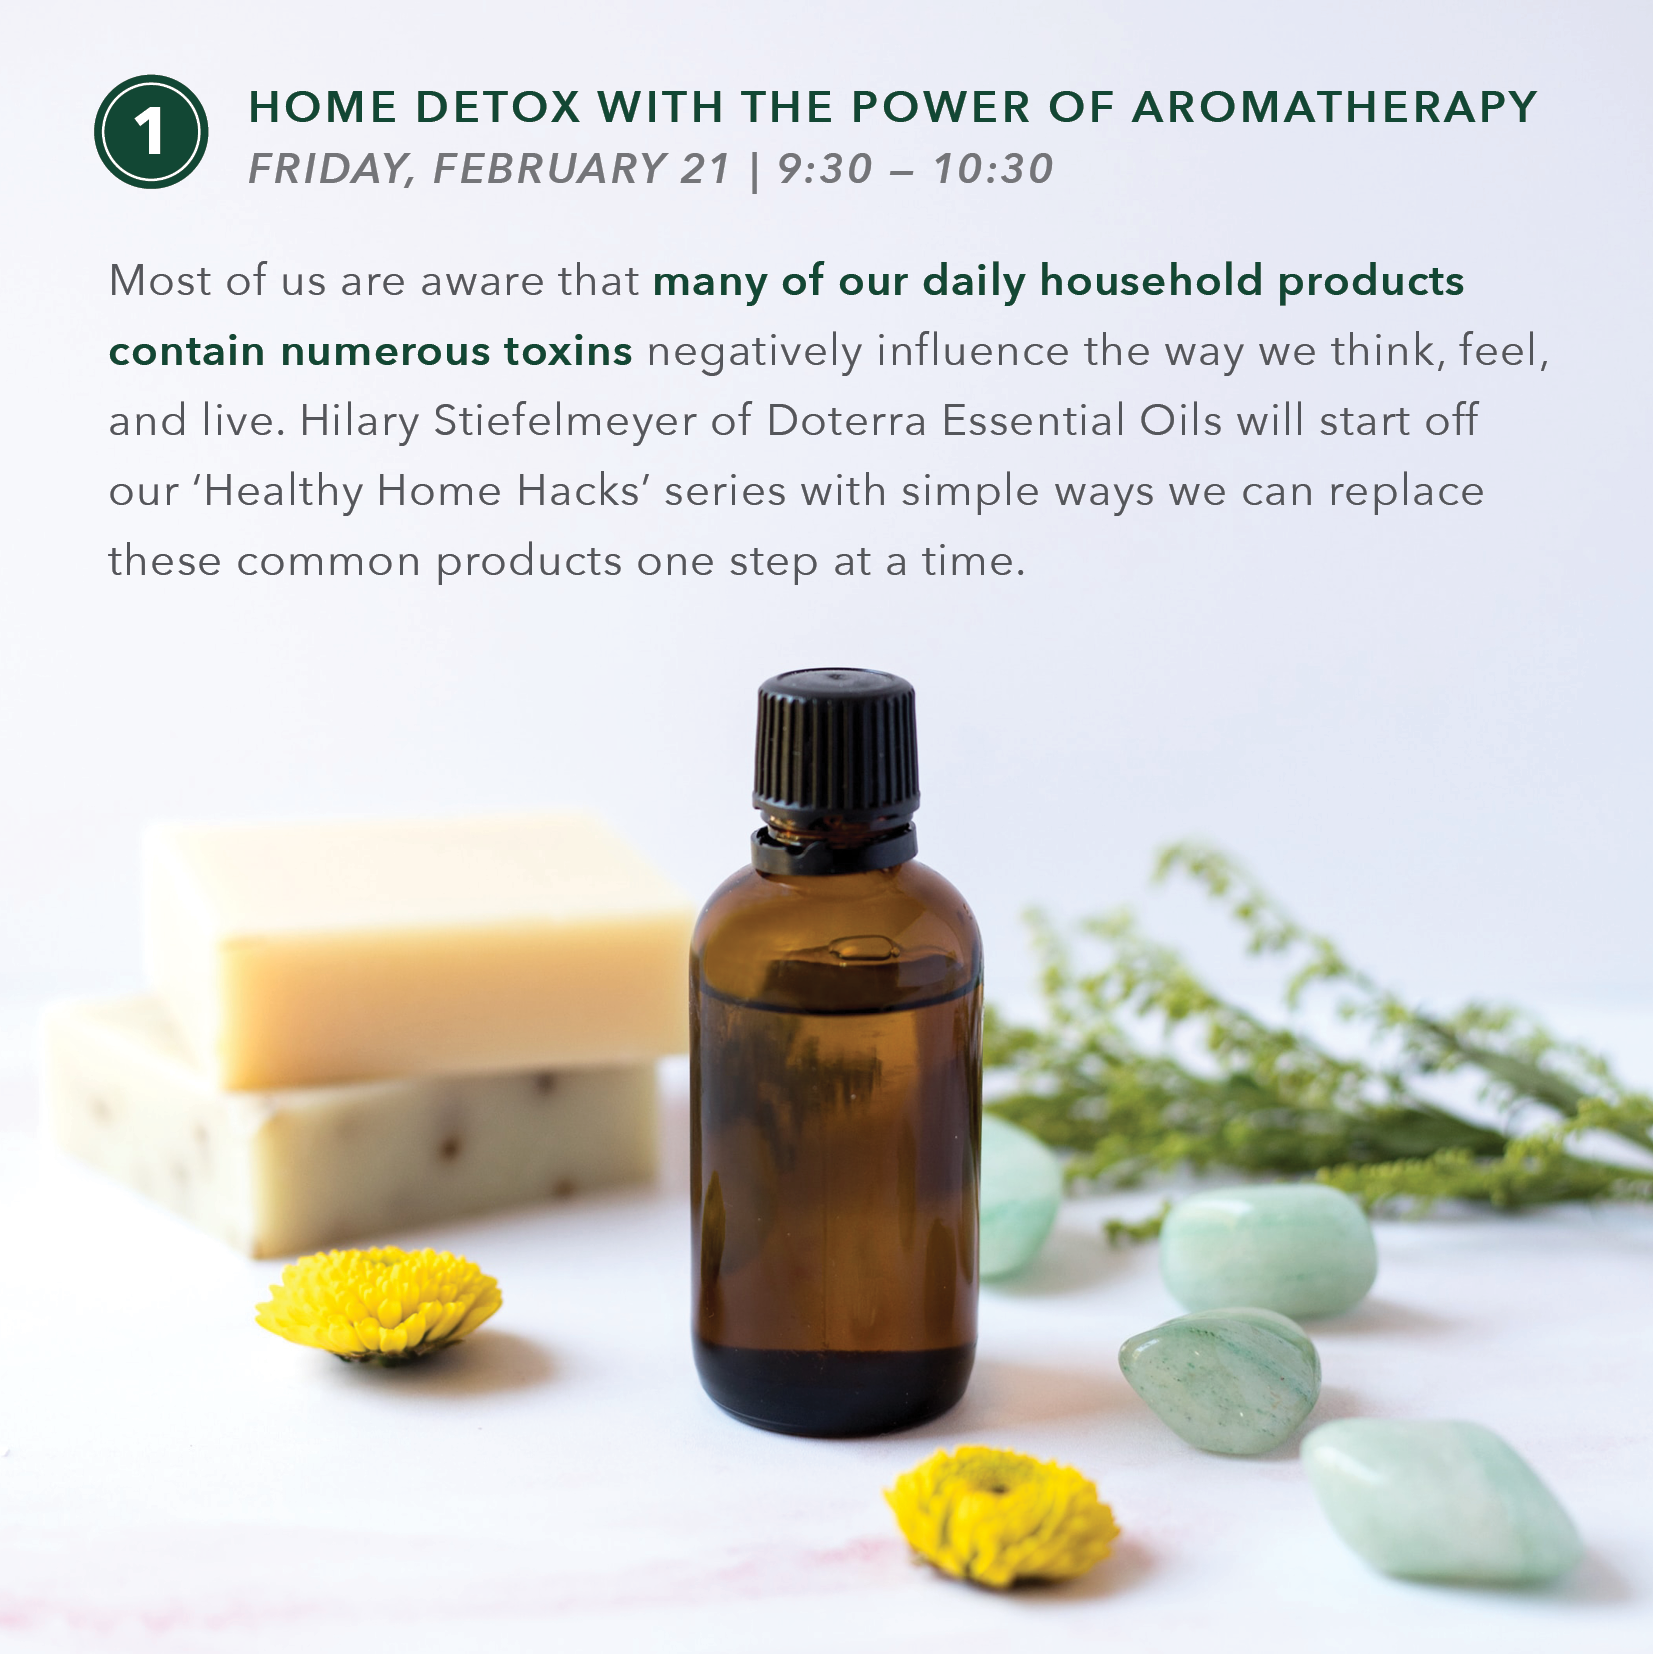 Healthy Home Hacks Part 1: Home Detox with the Power of Aromatherapy